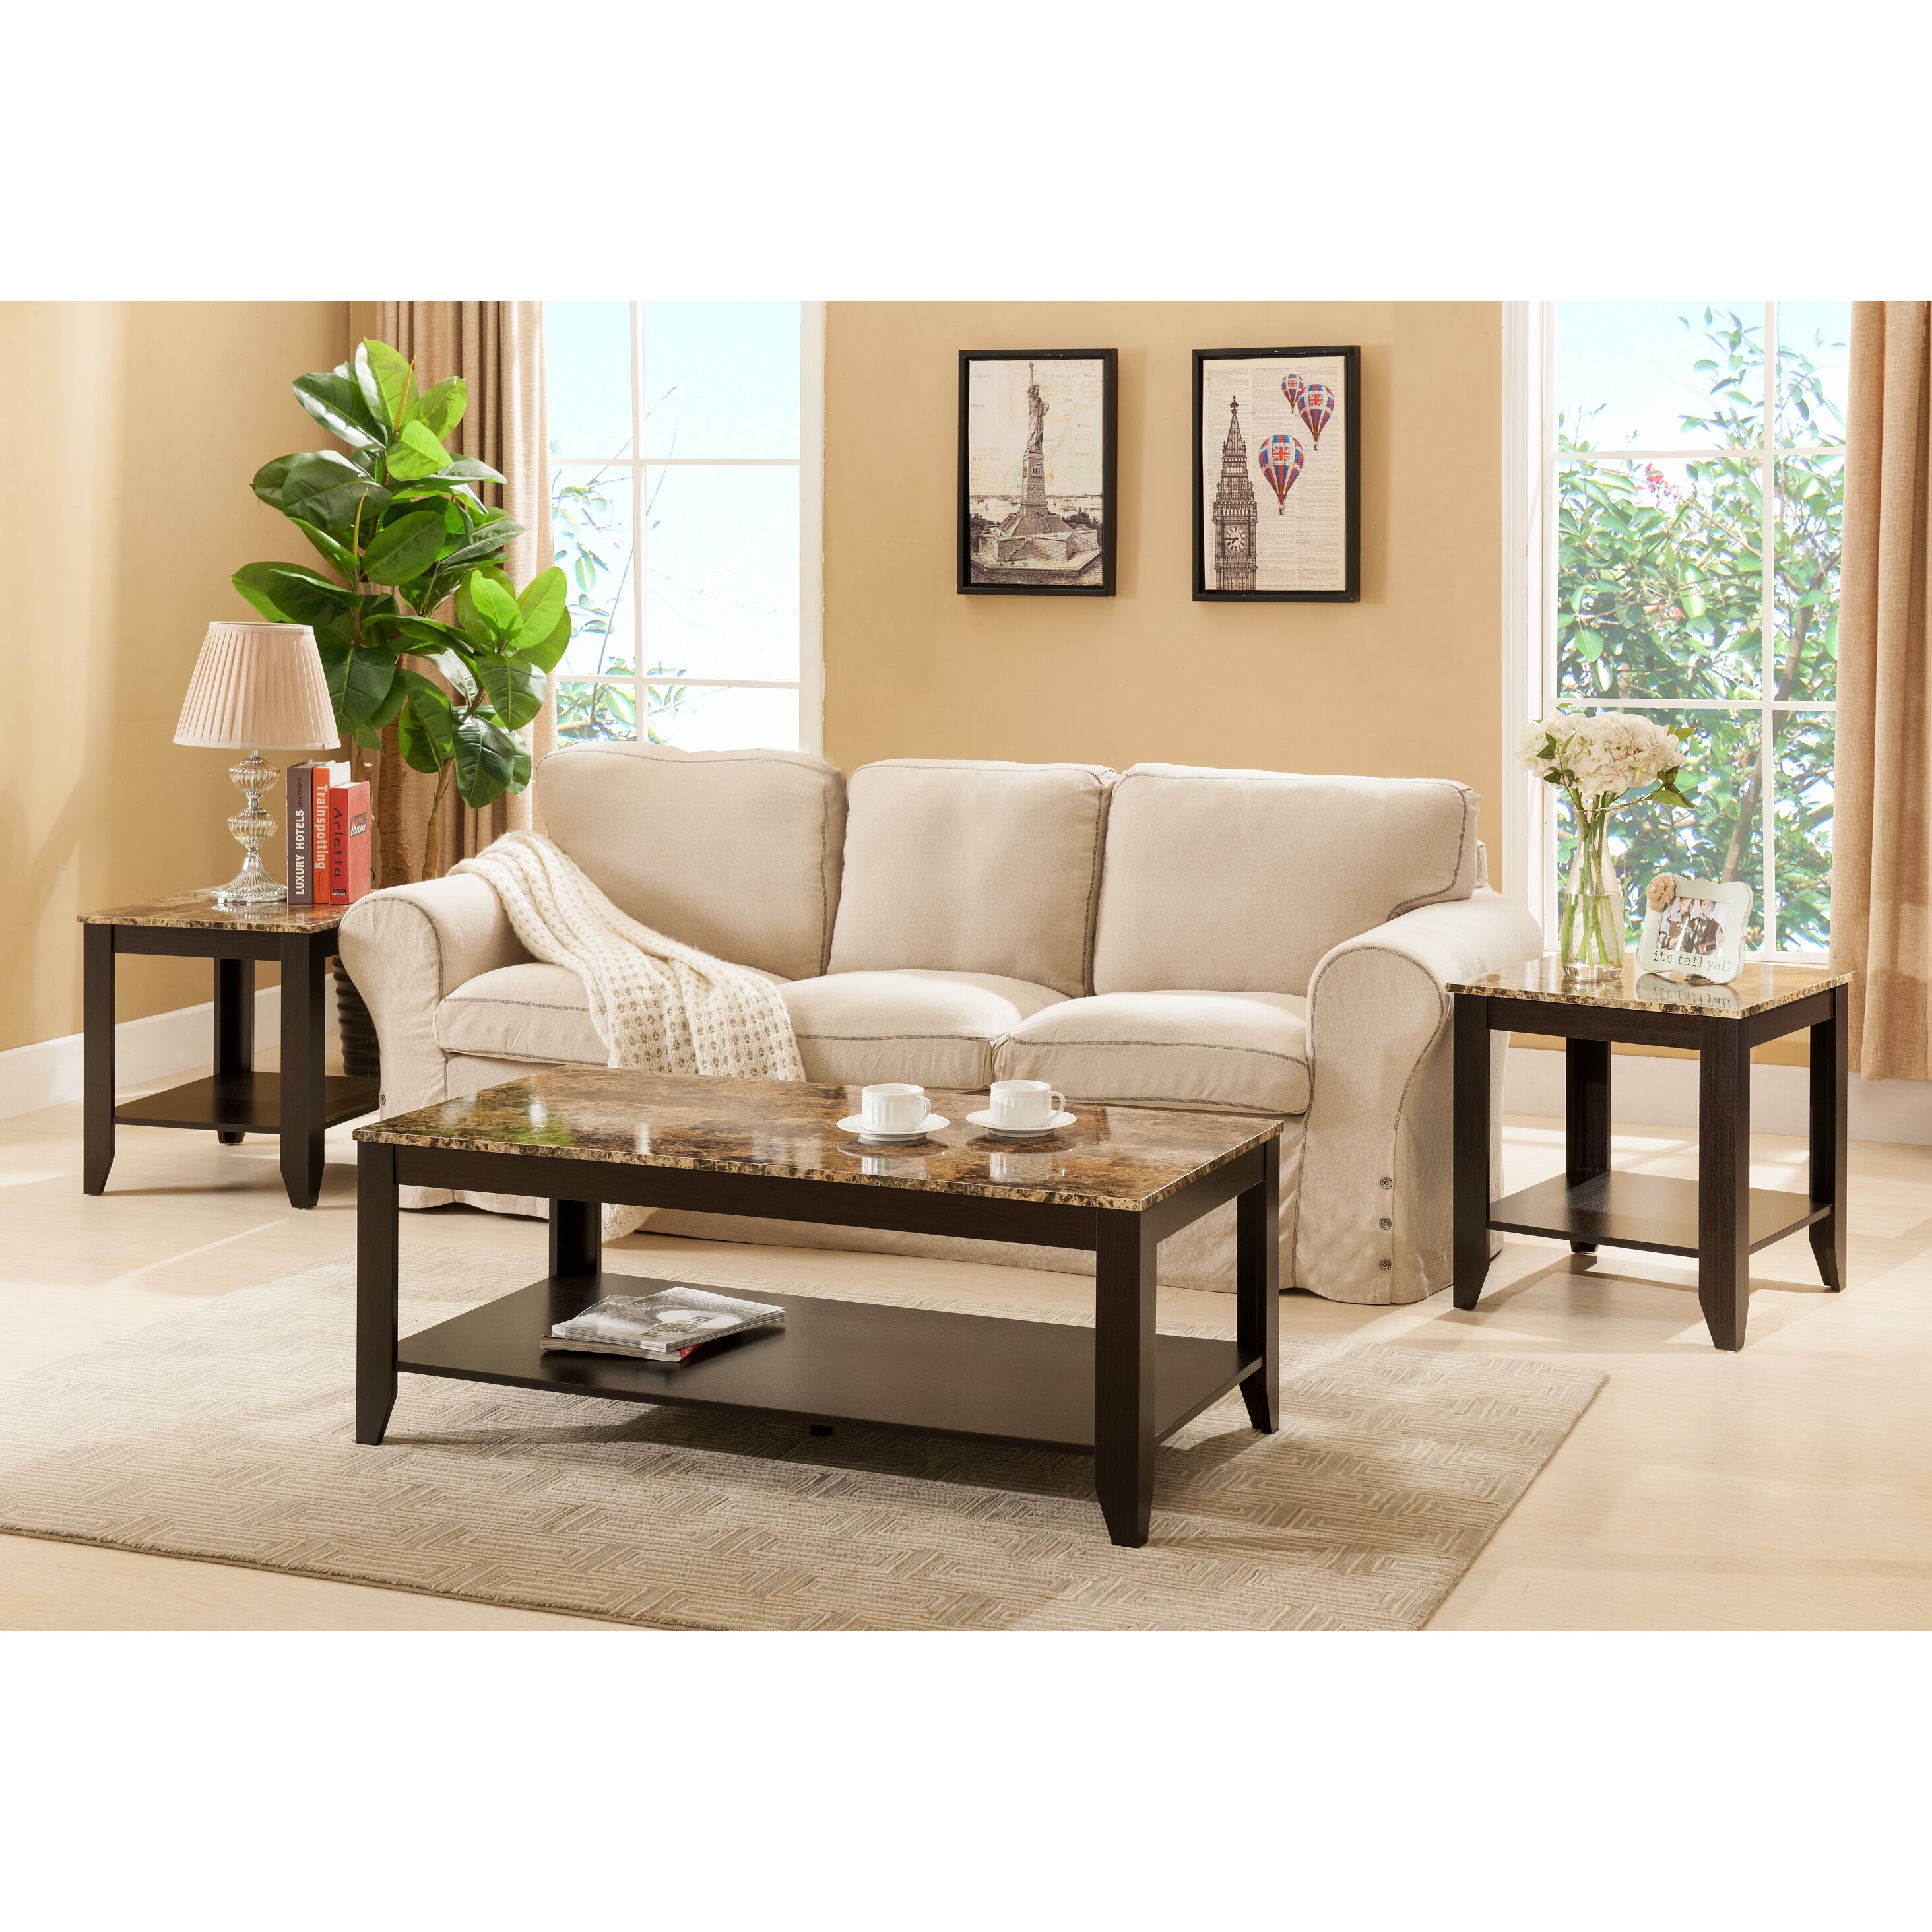 Hokku Coffee Table Sets: Konstanz 3 Piece Coffee Table Set